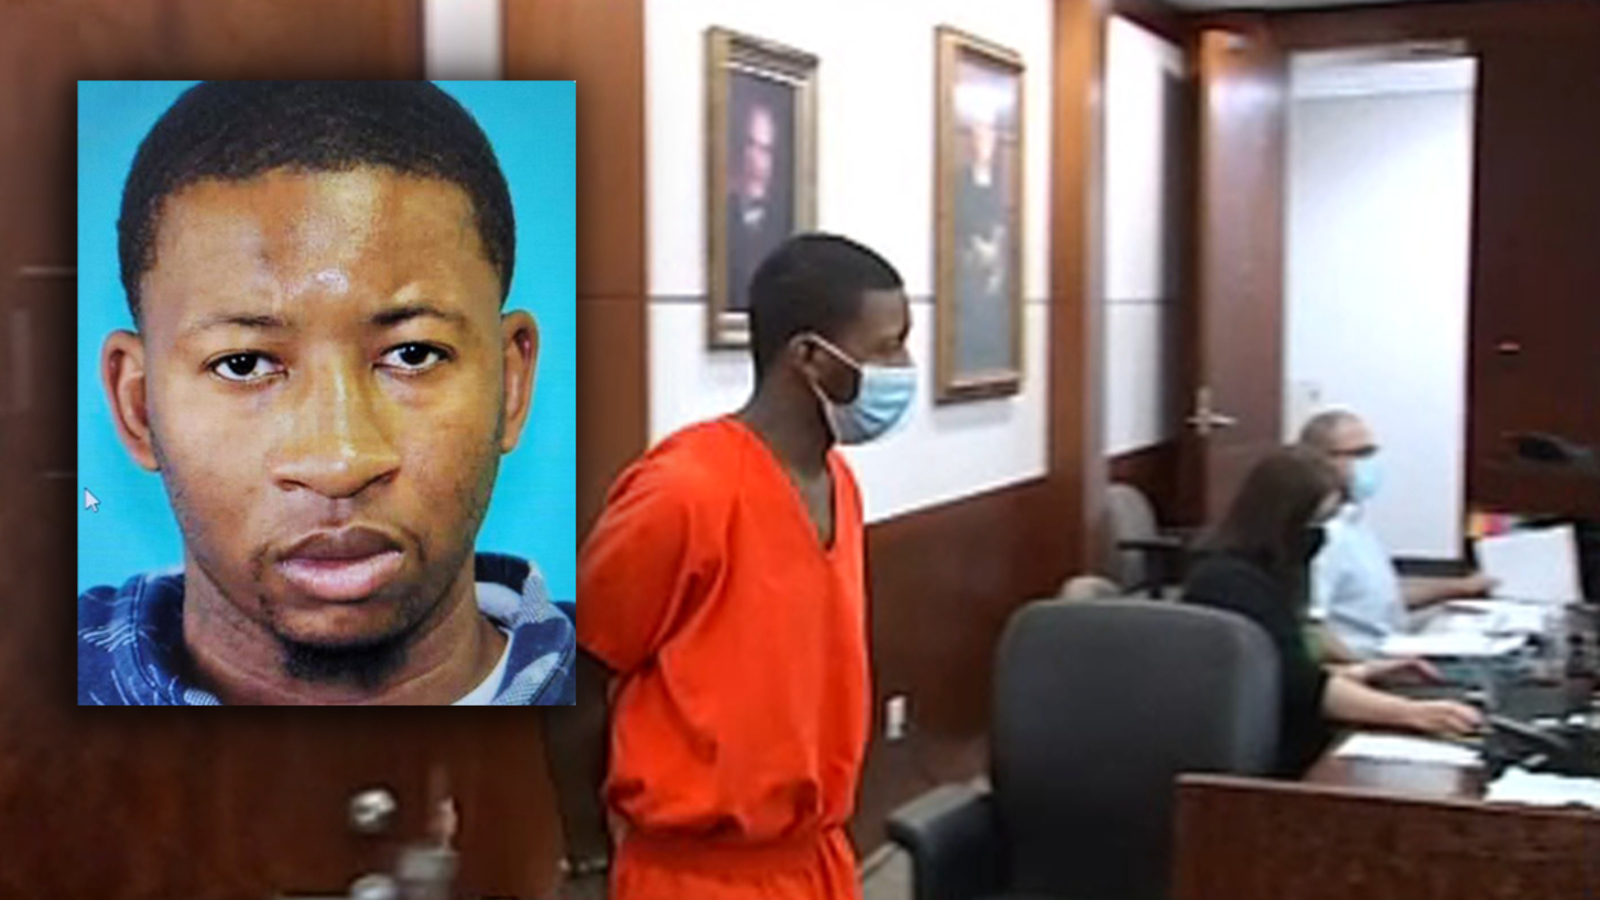 Gerald Williams released on bond in 17-year-old David Castro's road rage murder after an Astros game - KTRK-TV